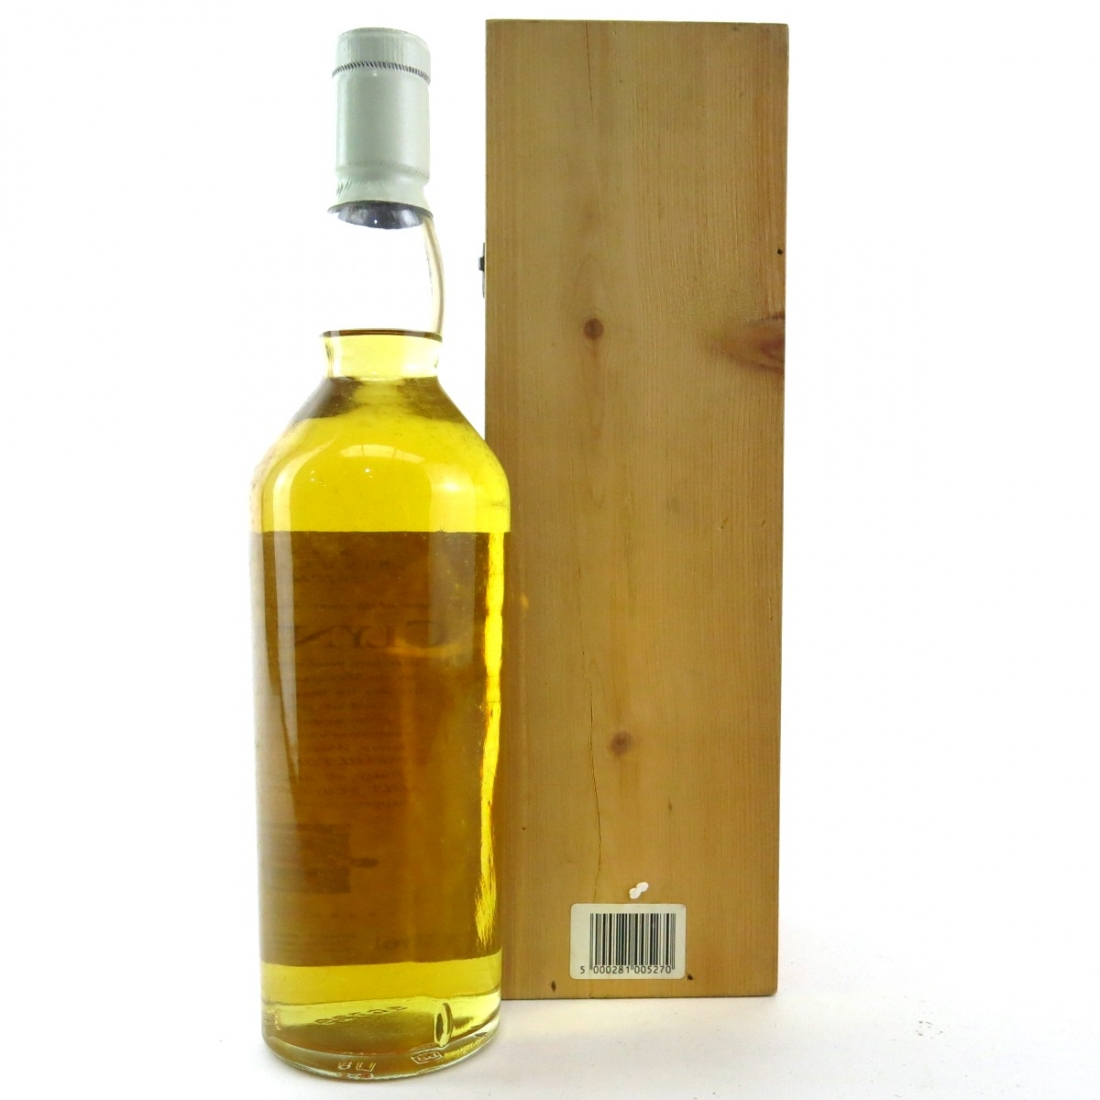 Clynelish 14 Year Old Flora and Fauna White Cap / Wooden Box